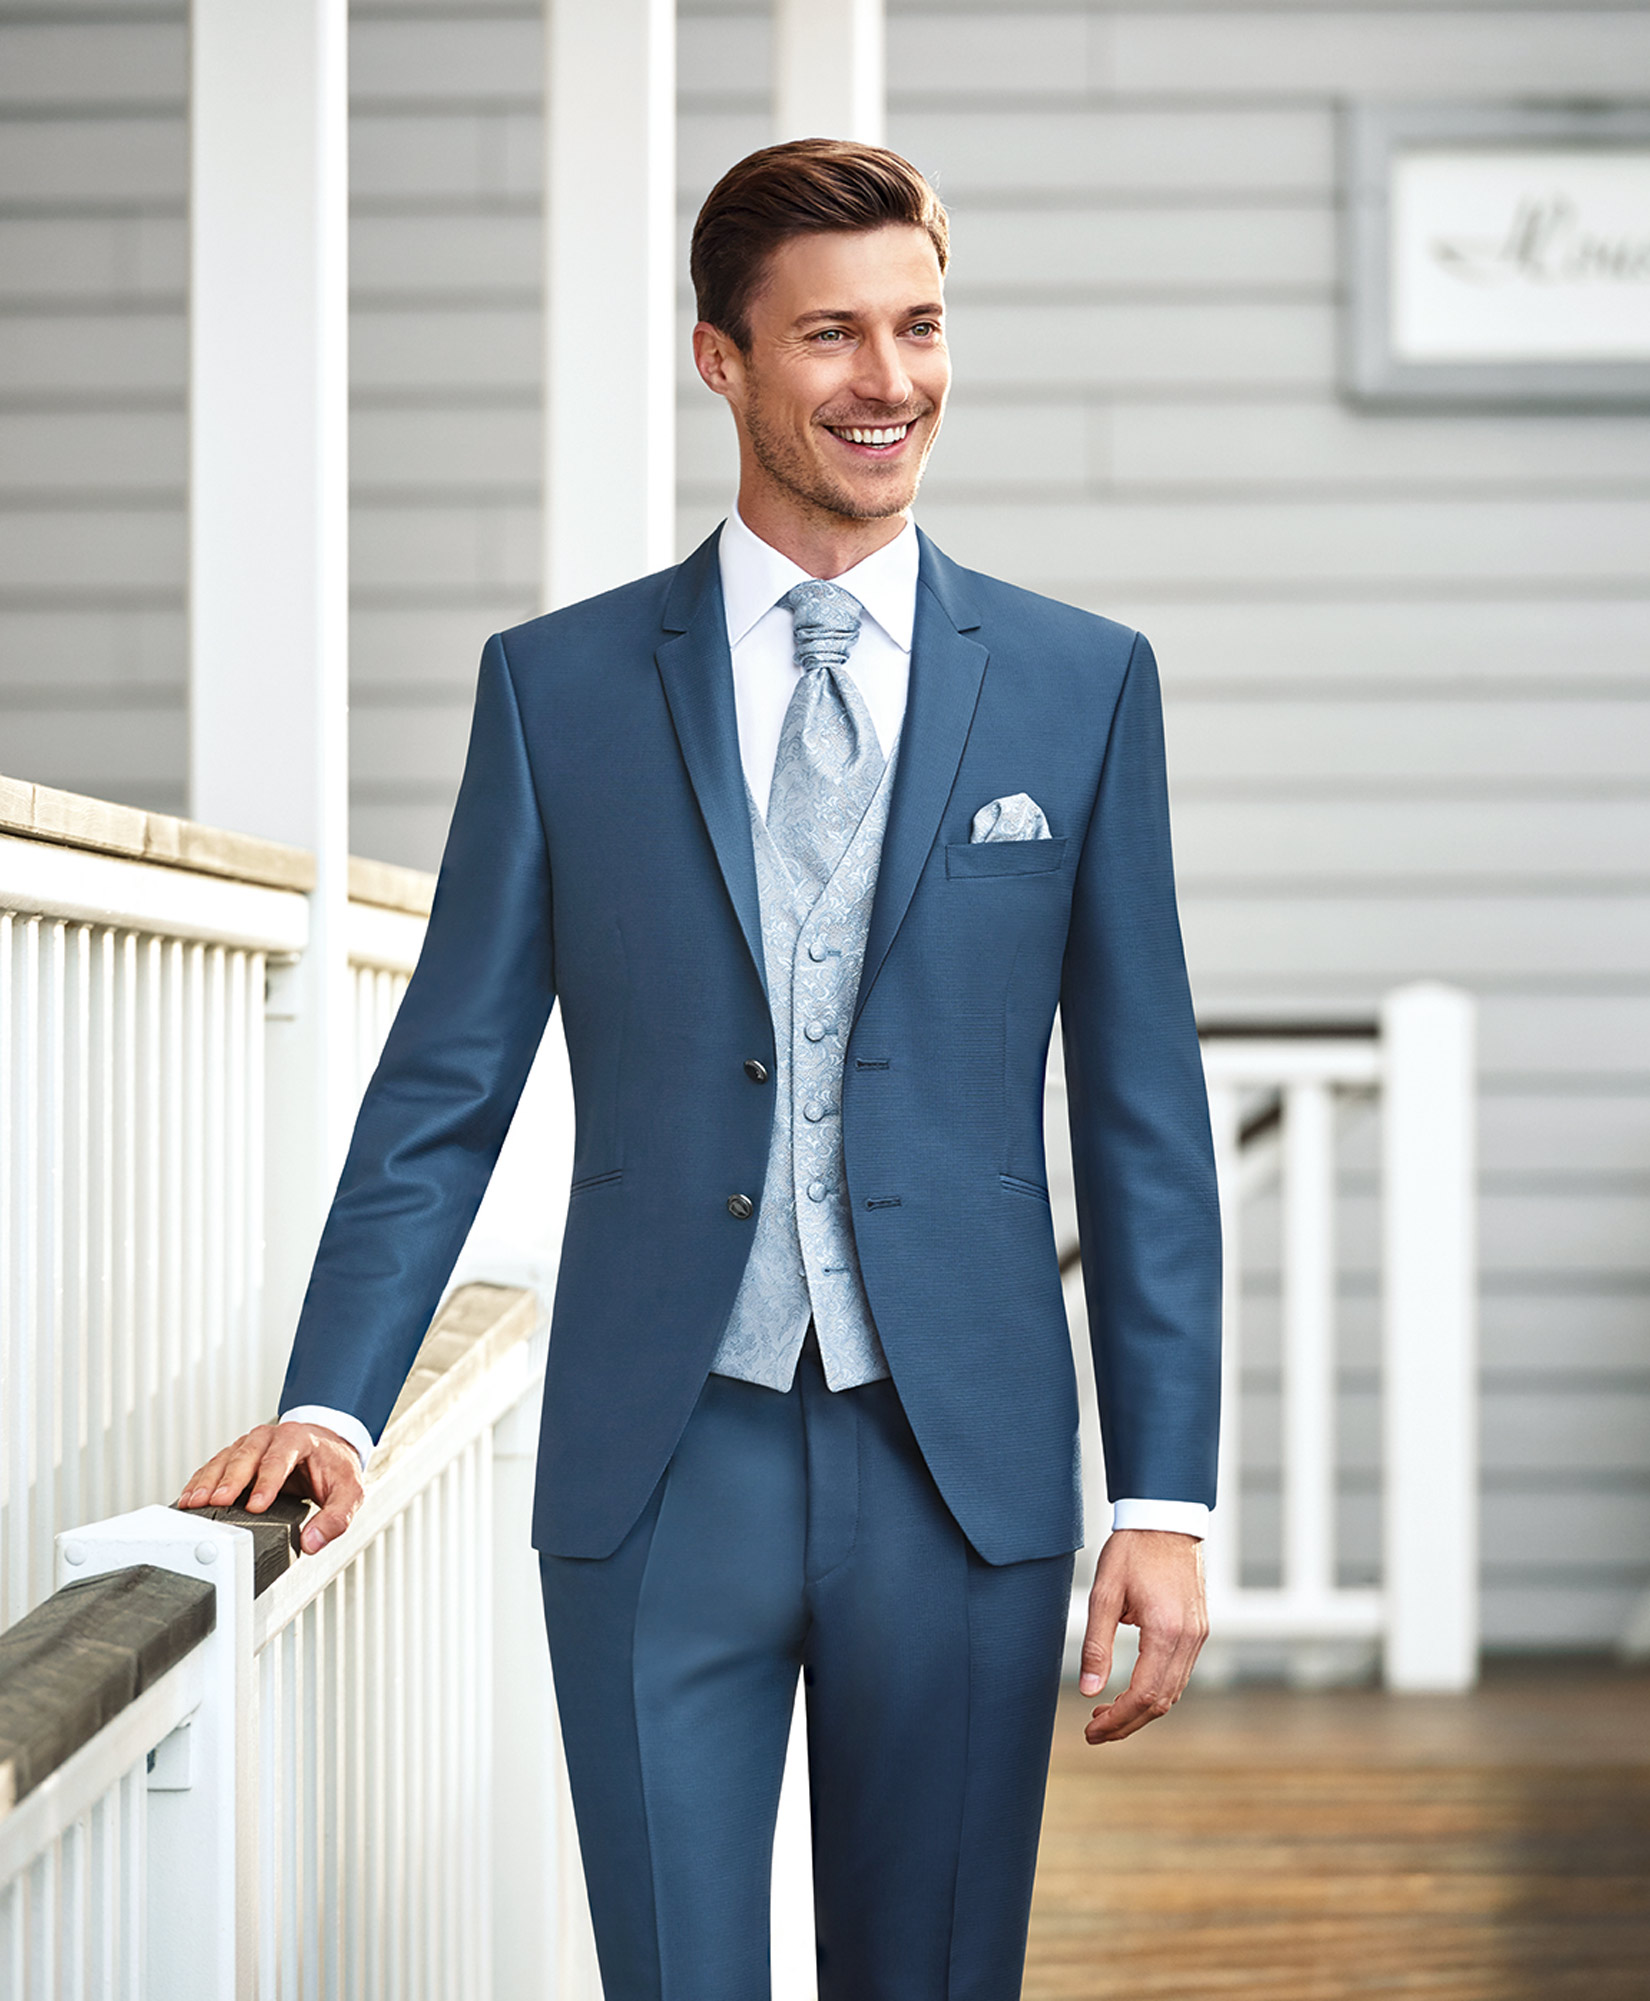 Hazy Blue 3 Piece Wedding Suit - Tom Murphy\'s Formal and Menswear